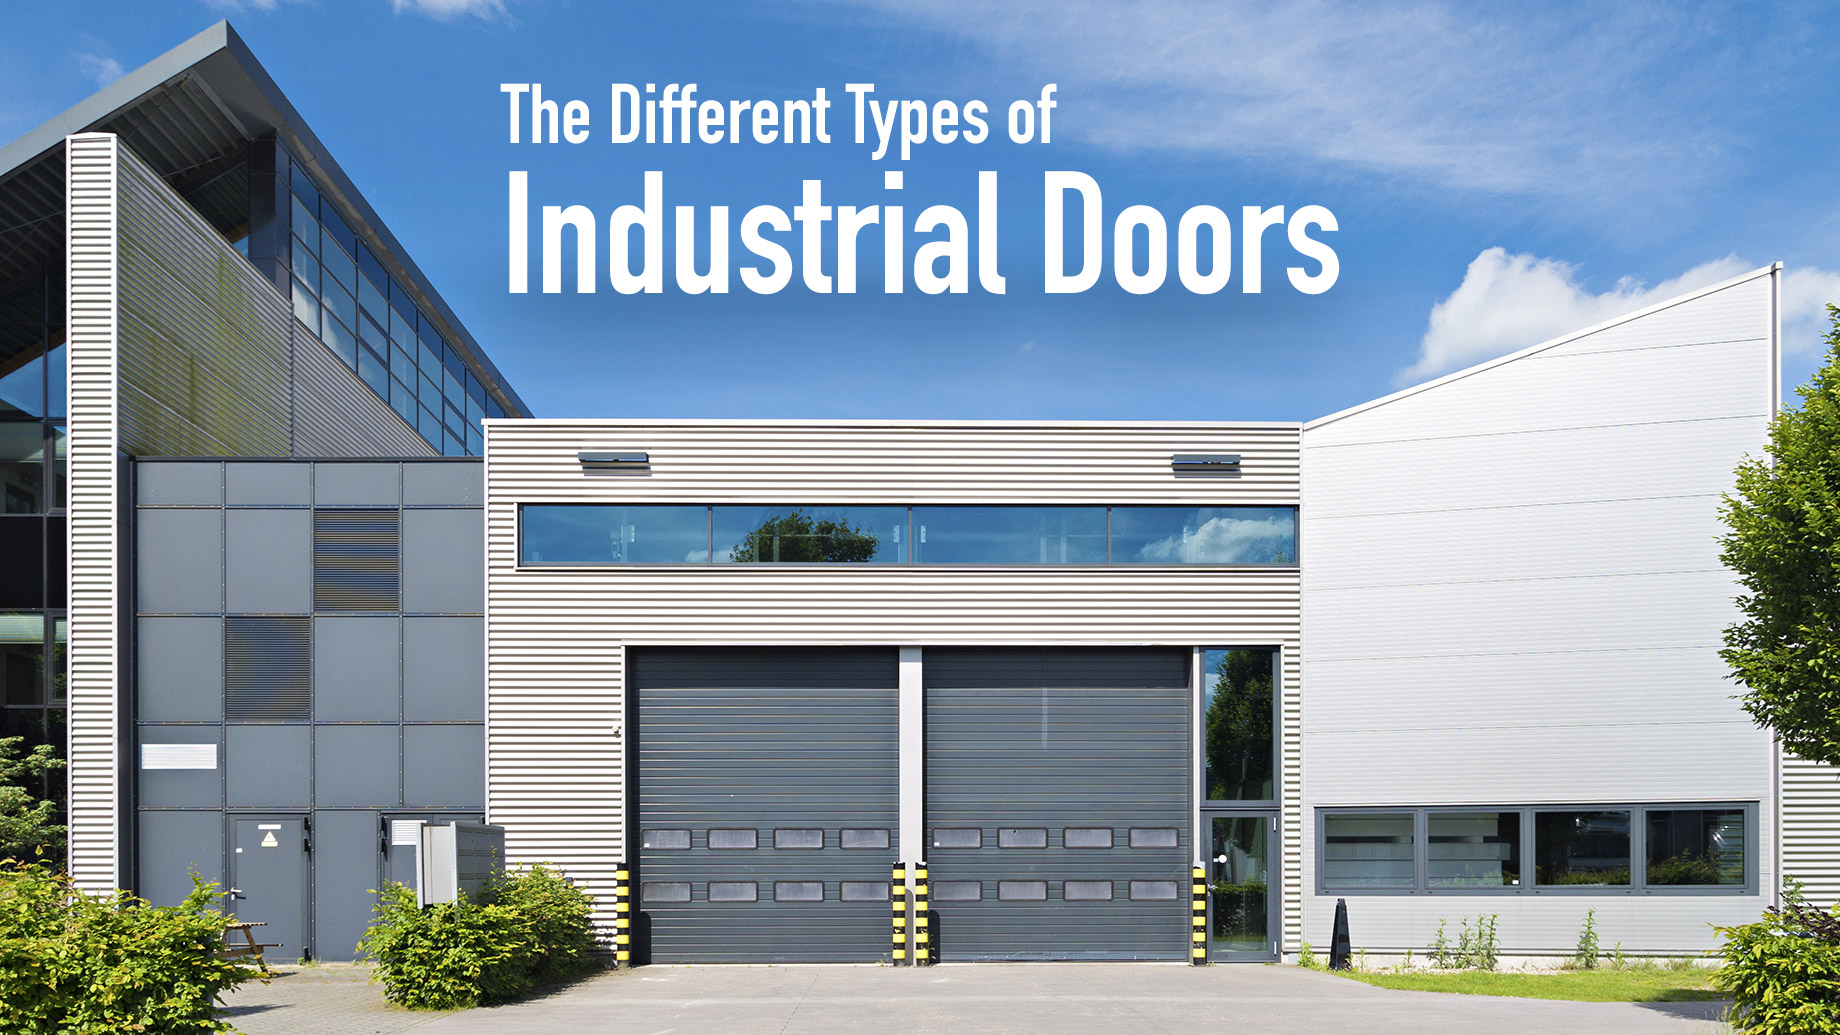 The Different Types of Industrial Doors